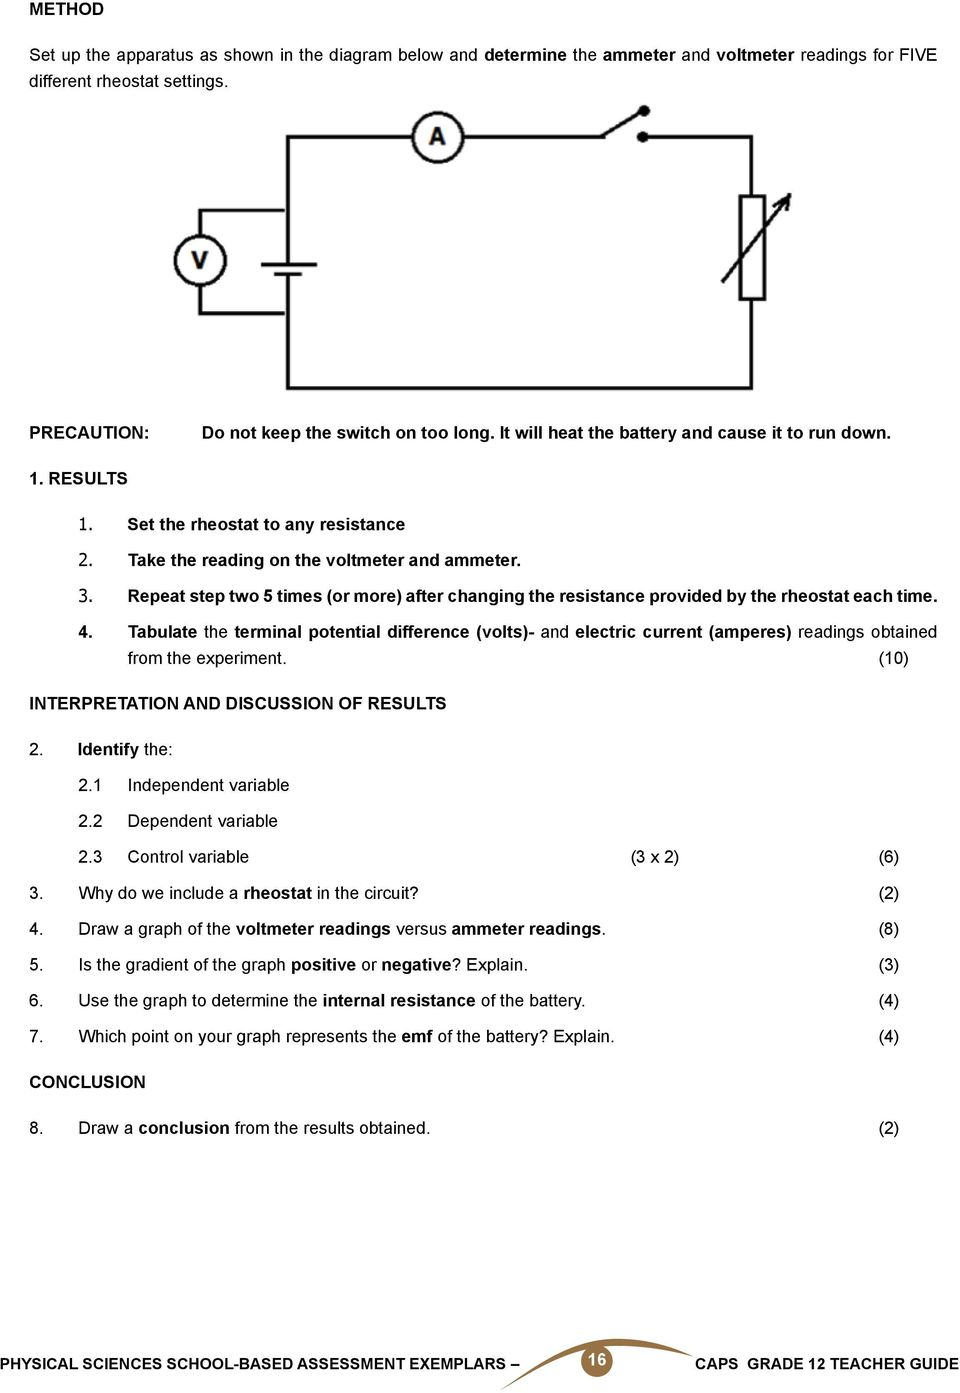 Physical Sciences School Based Assessment Exemplars Caps Grade 12 Lessons Electric Circuits Volumeexperiments Chapter Wiring Circuit Repeat Step Two 5 Times Or More After Changing The Resistance Provided By